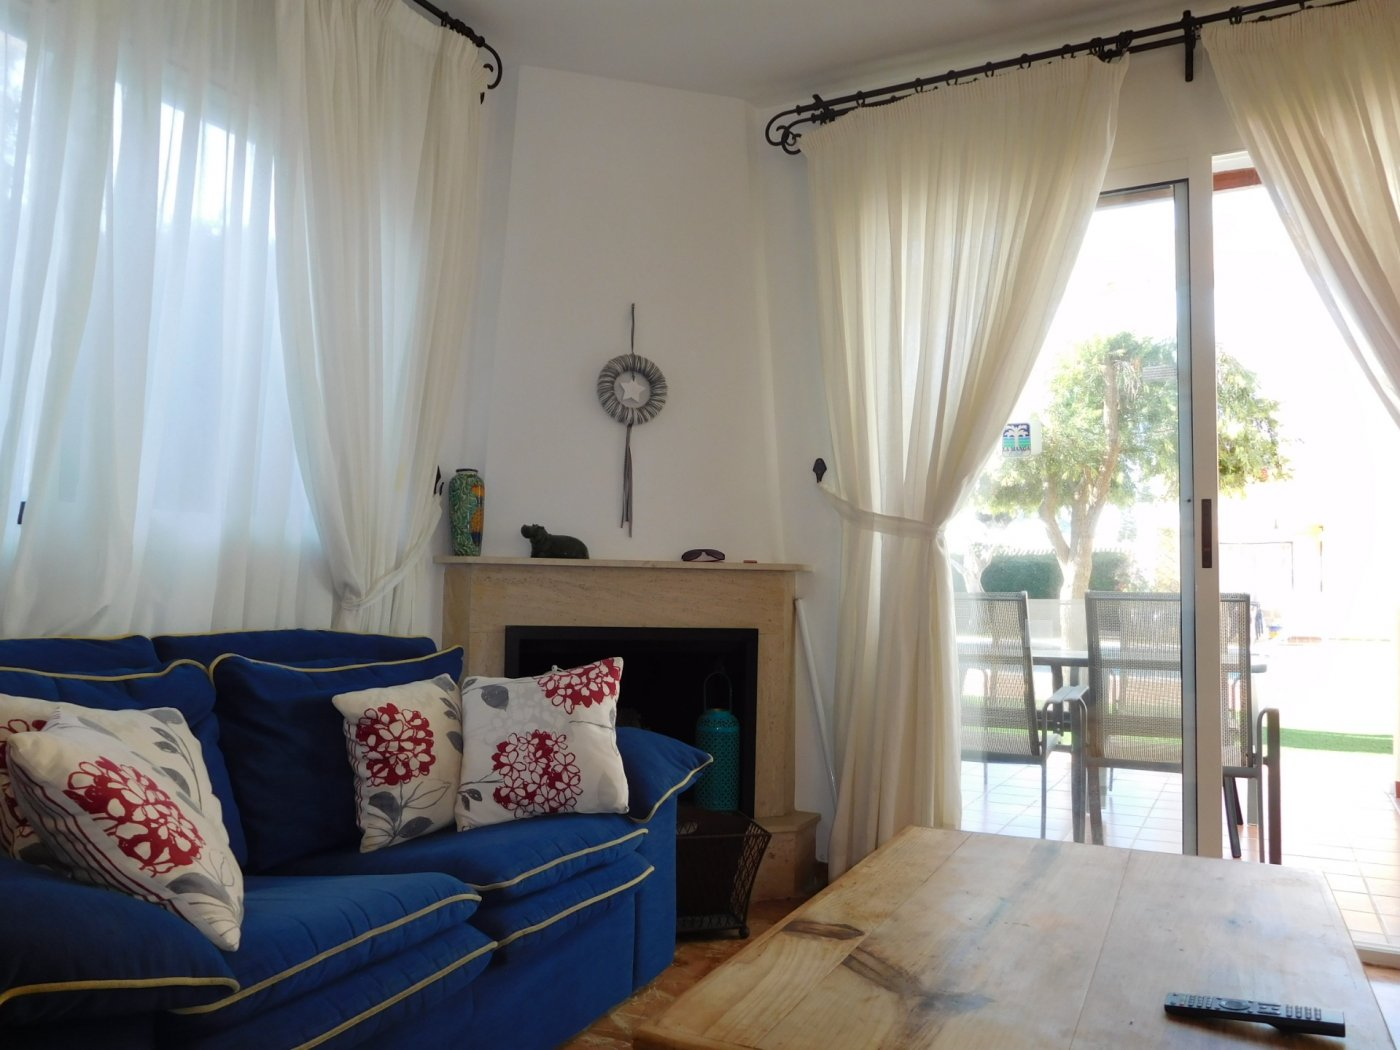 Gallery Image 8 of Casa For rent in Los Naranjos, La Manga Club With Pool